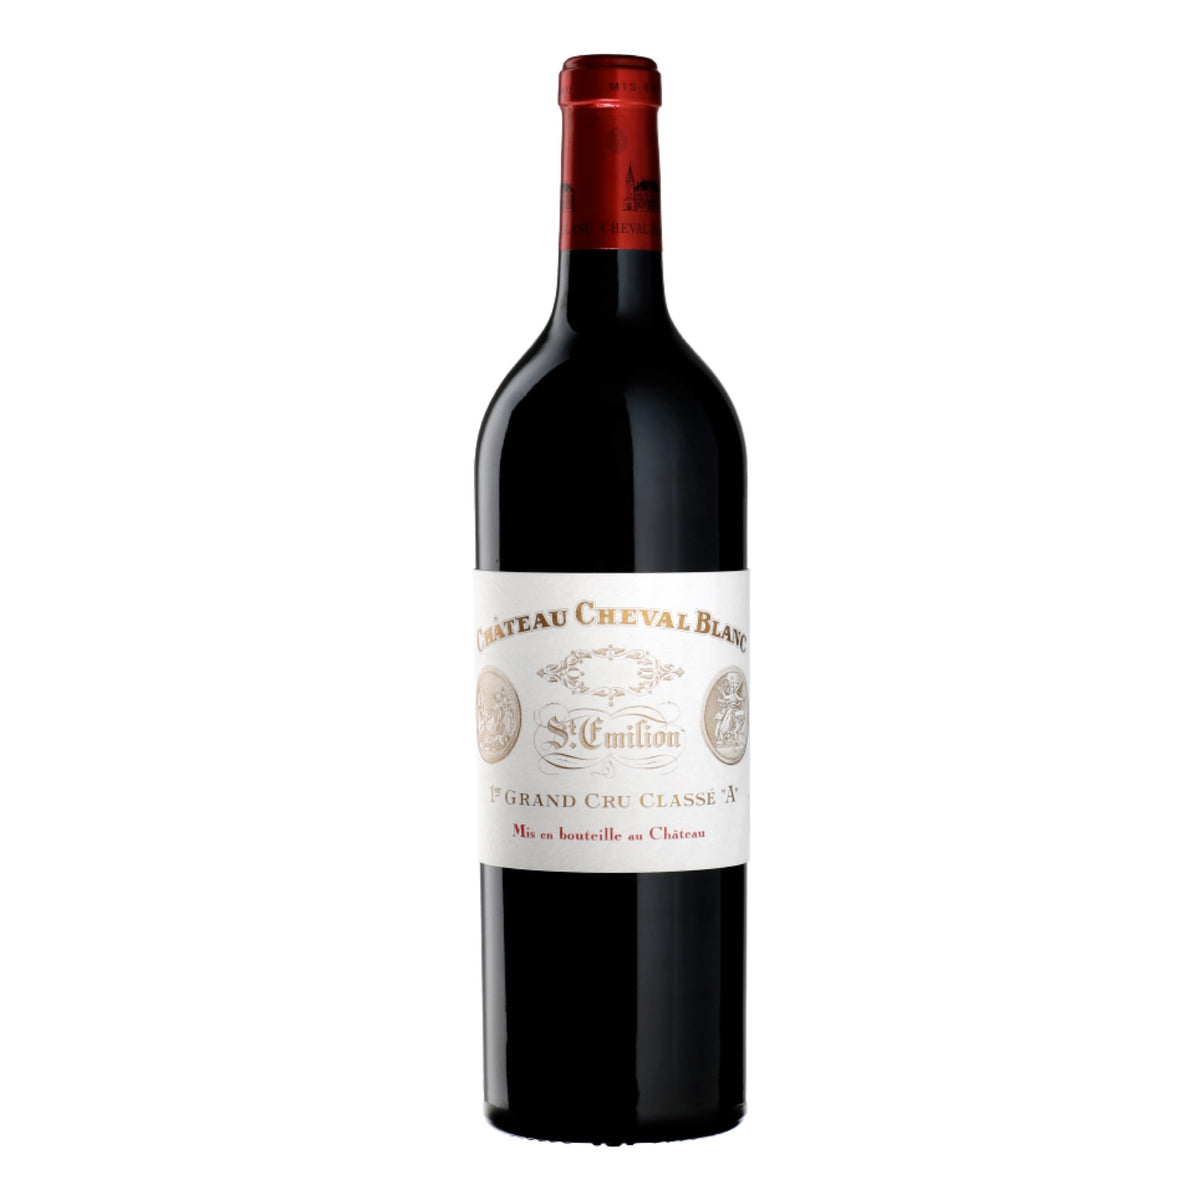 Chateau CHEVAL BLANC Saint-Emilion Grand Cru 2007